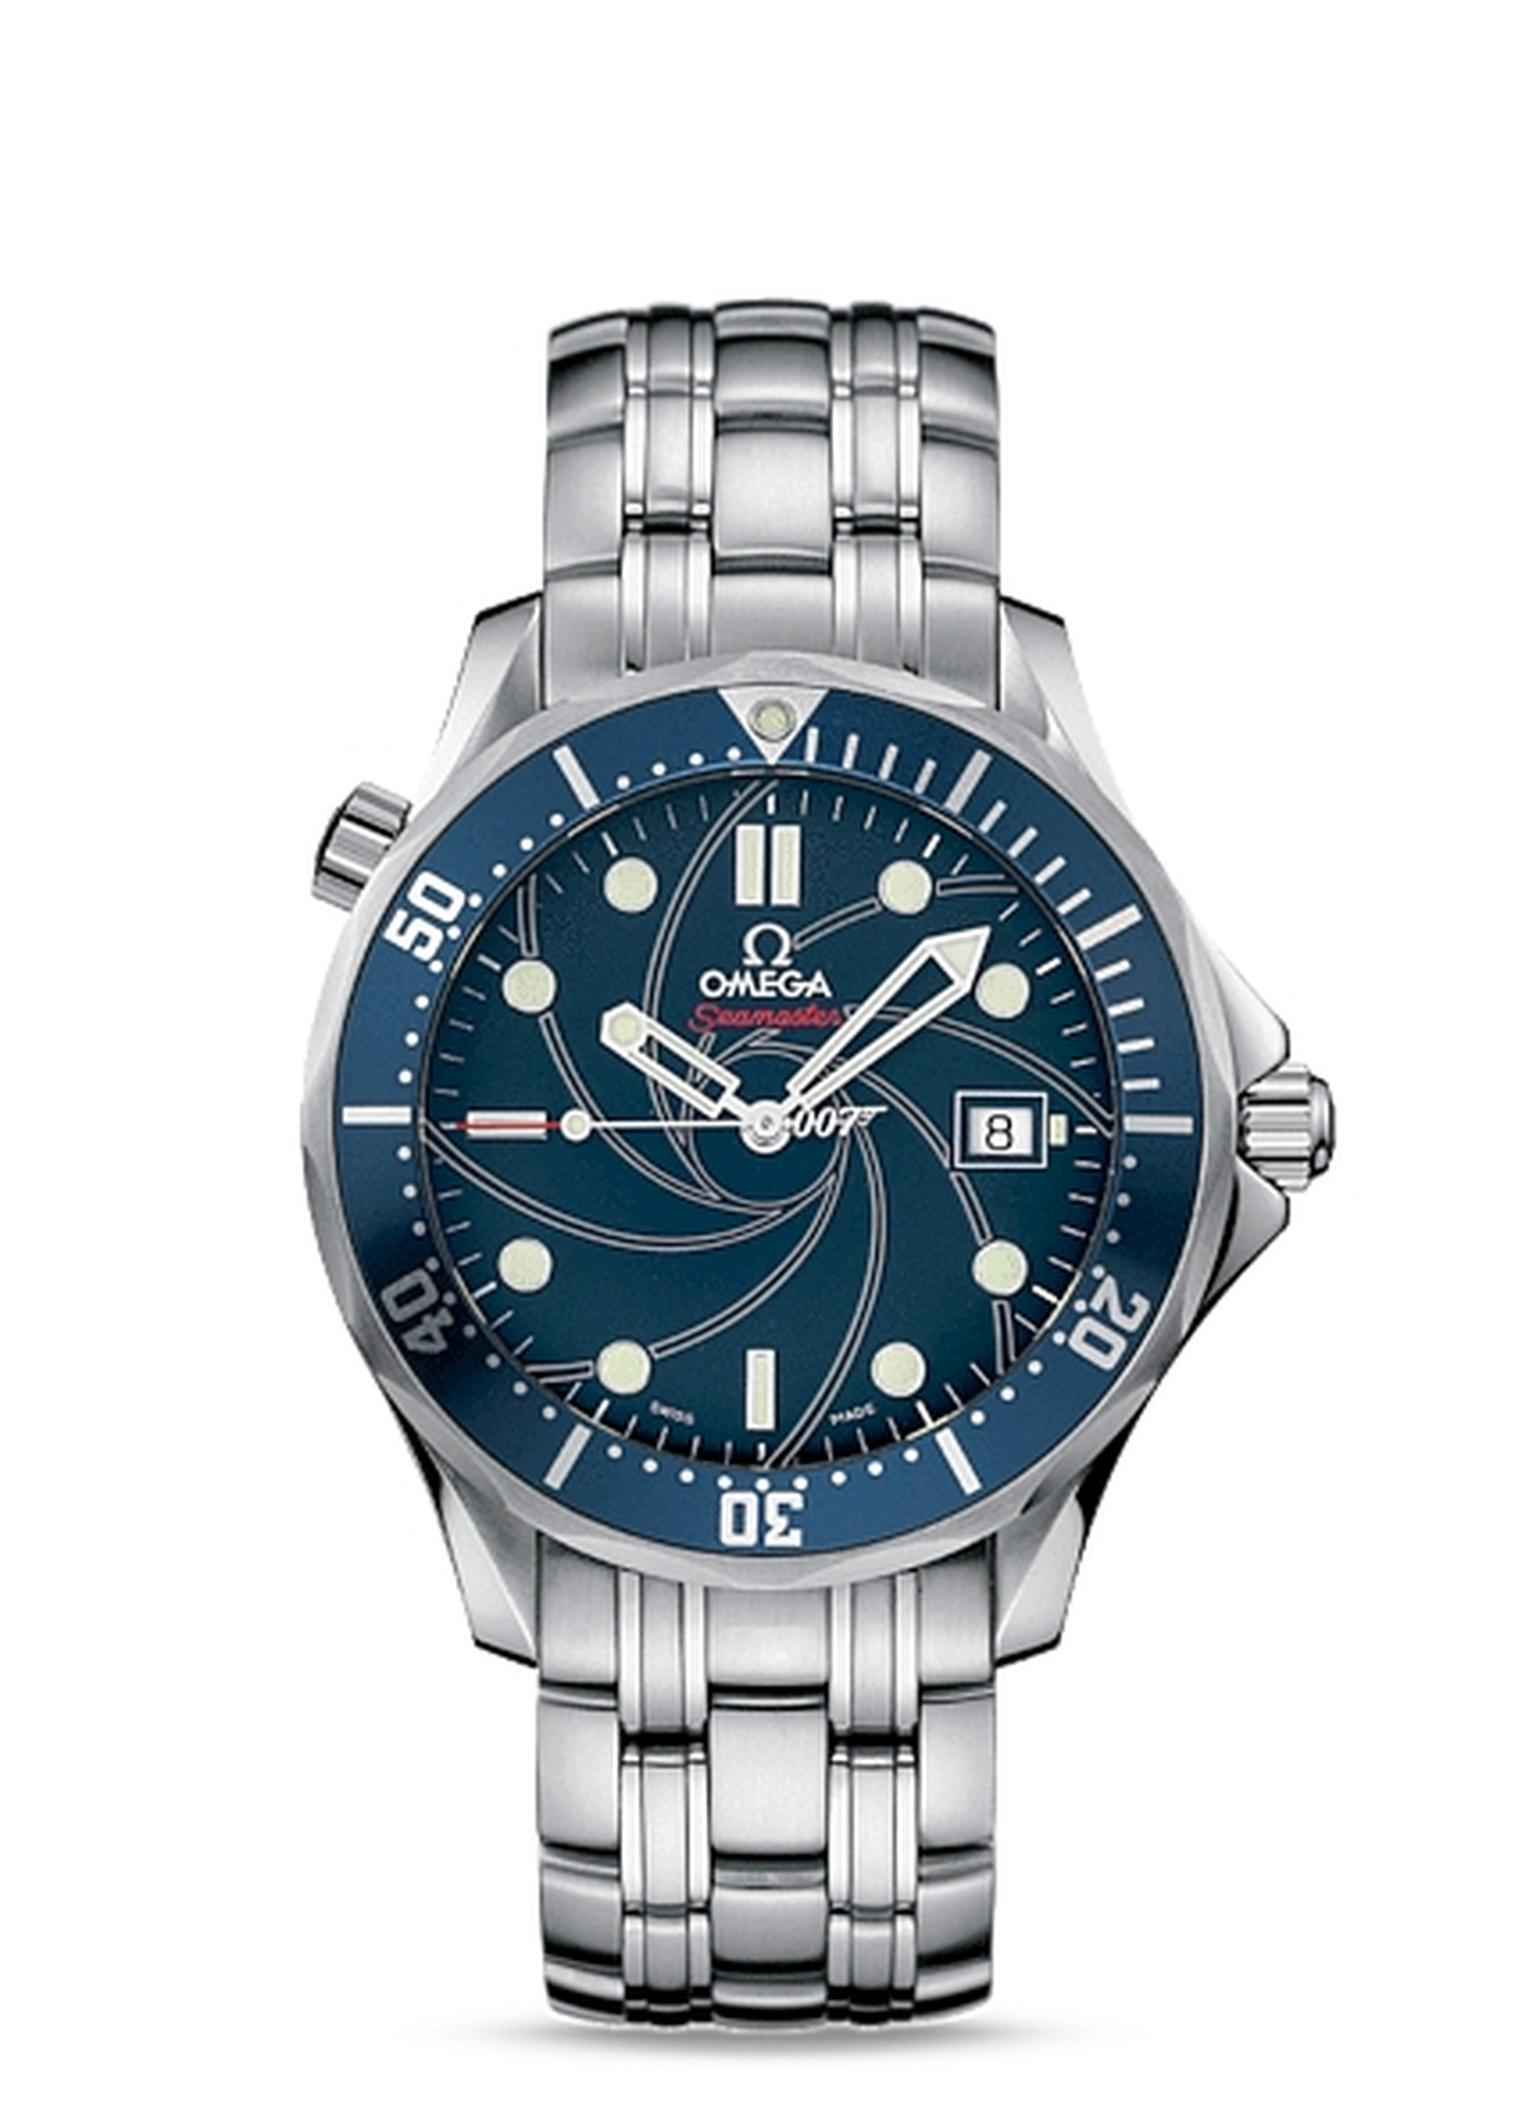 The limited-edition James Bond Omega Seamaster 300m chronometer watch.